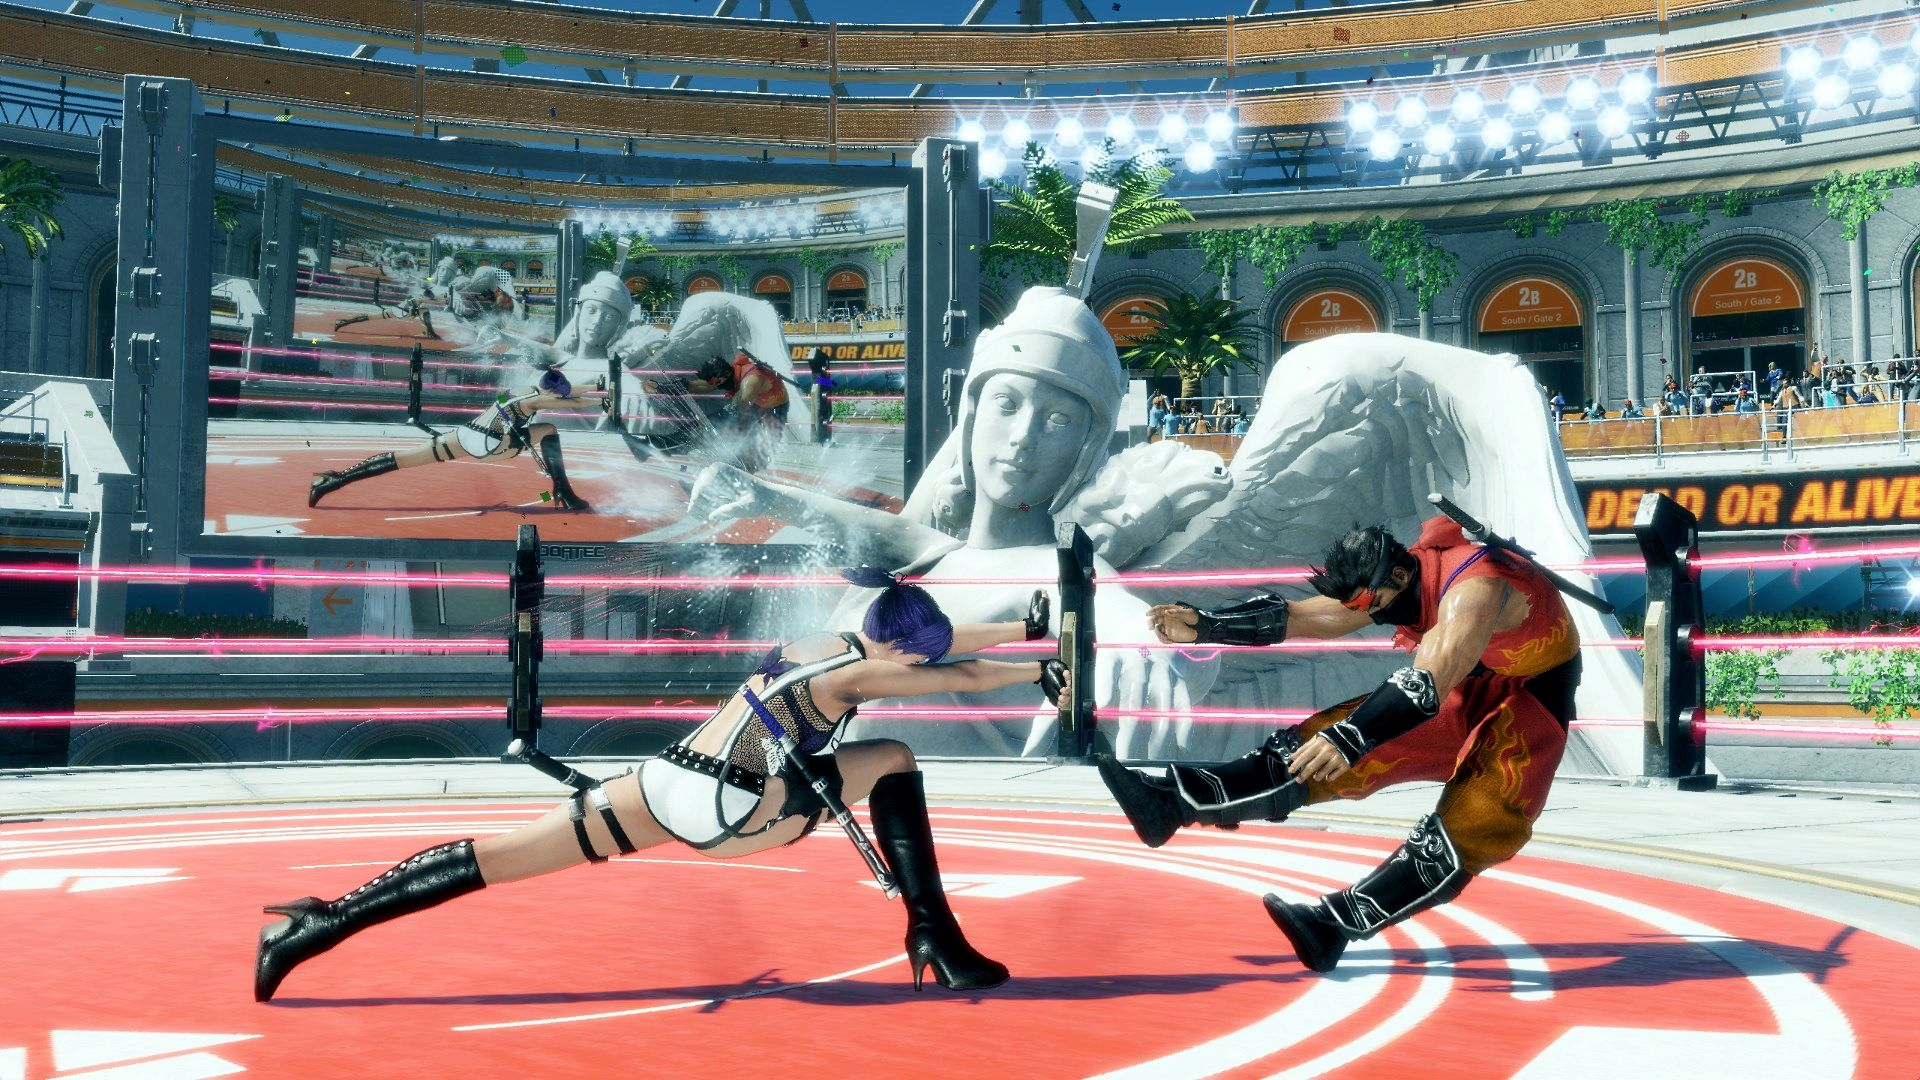 Ayane Vs Diego Fighter Hd Dead Or Alive 6 Fighter Diego Colosseum